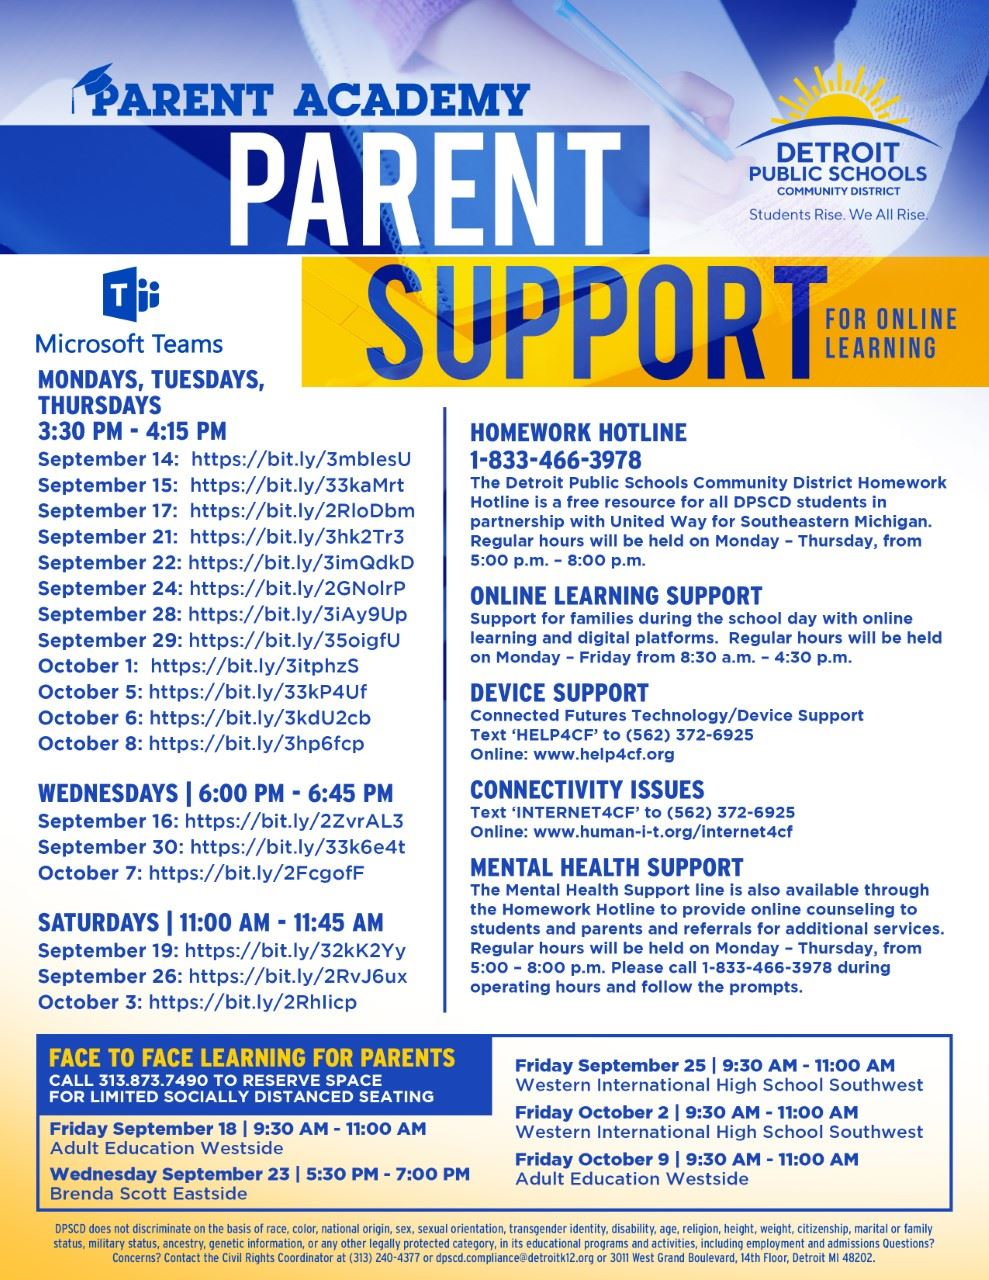 flyer with information to help support parents through virtual learning.